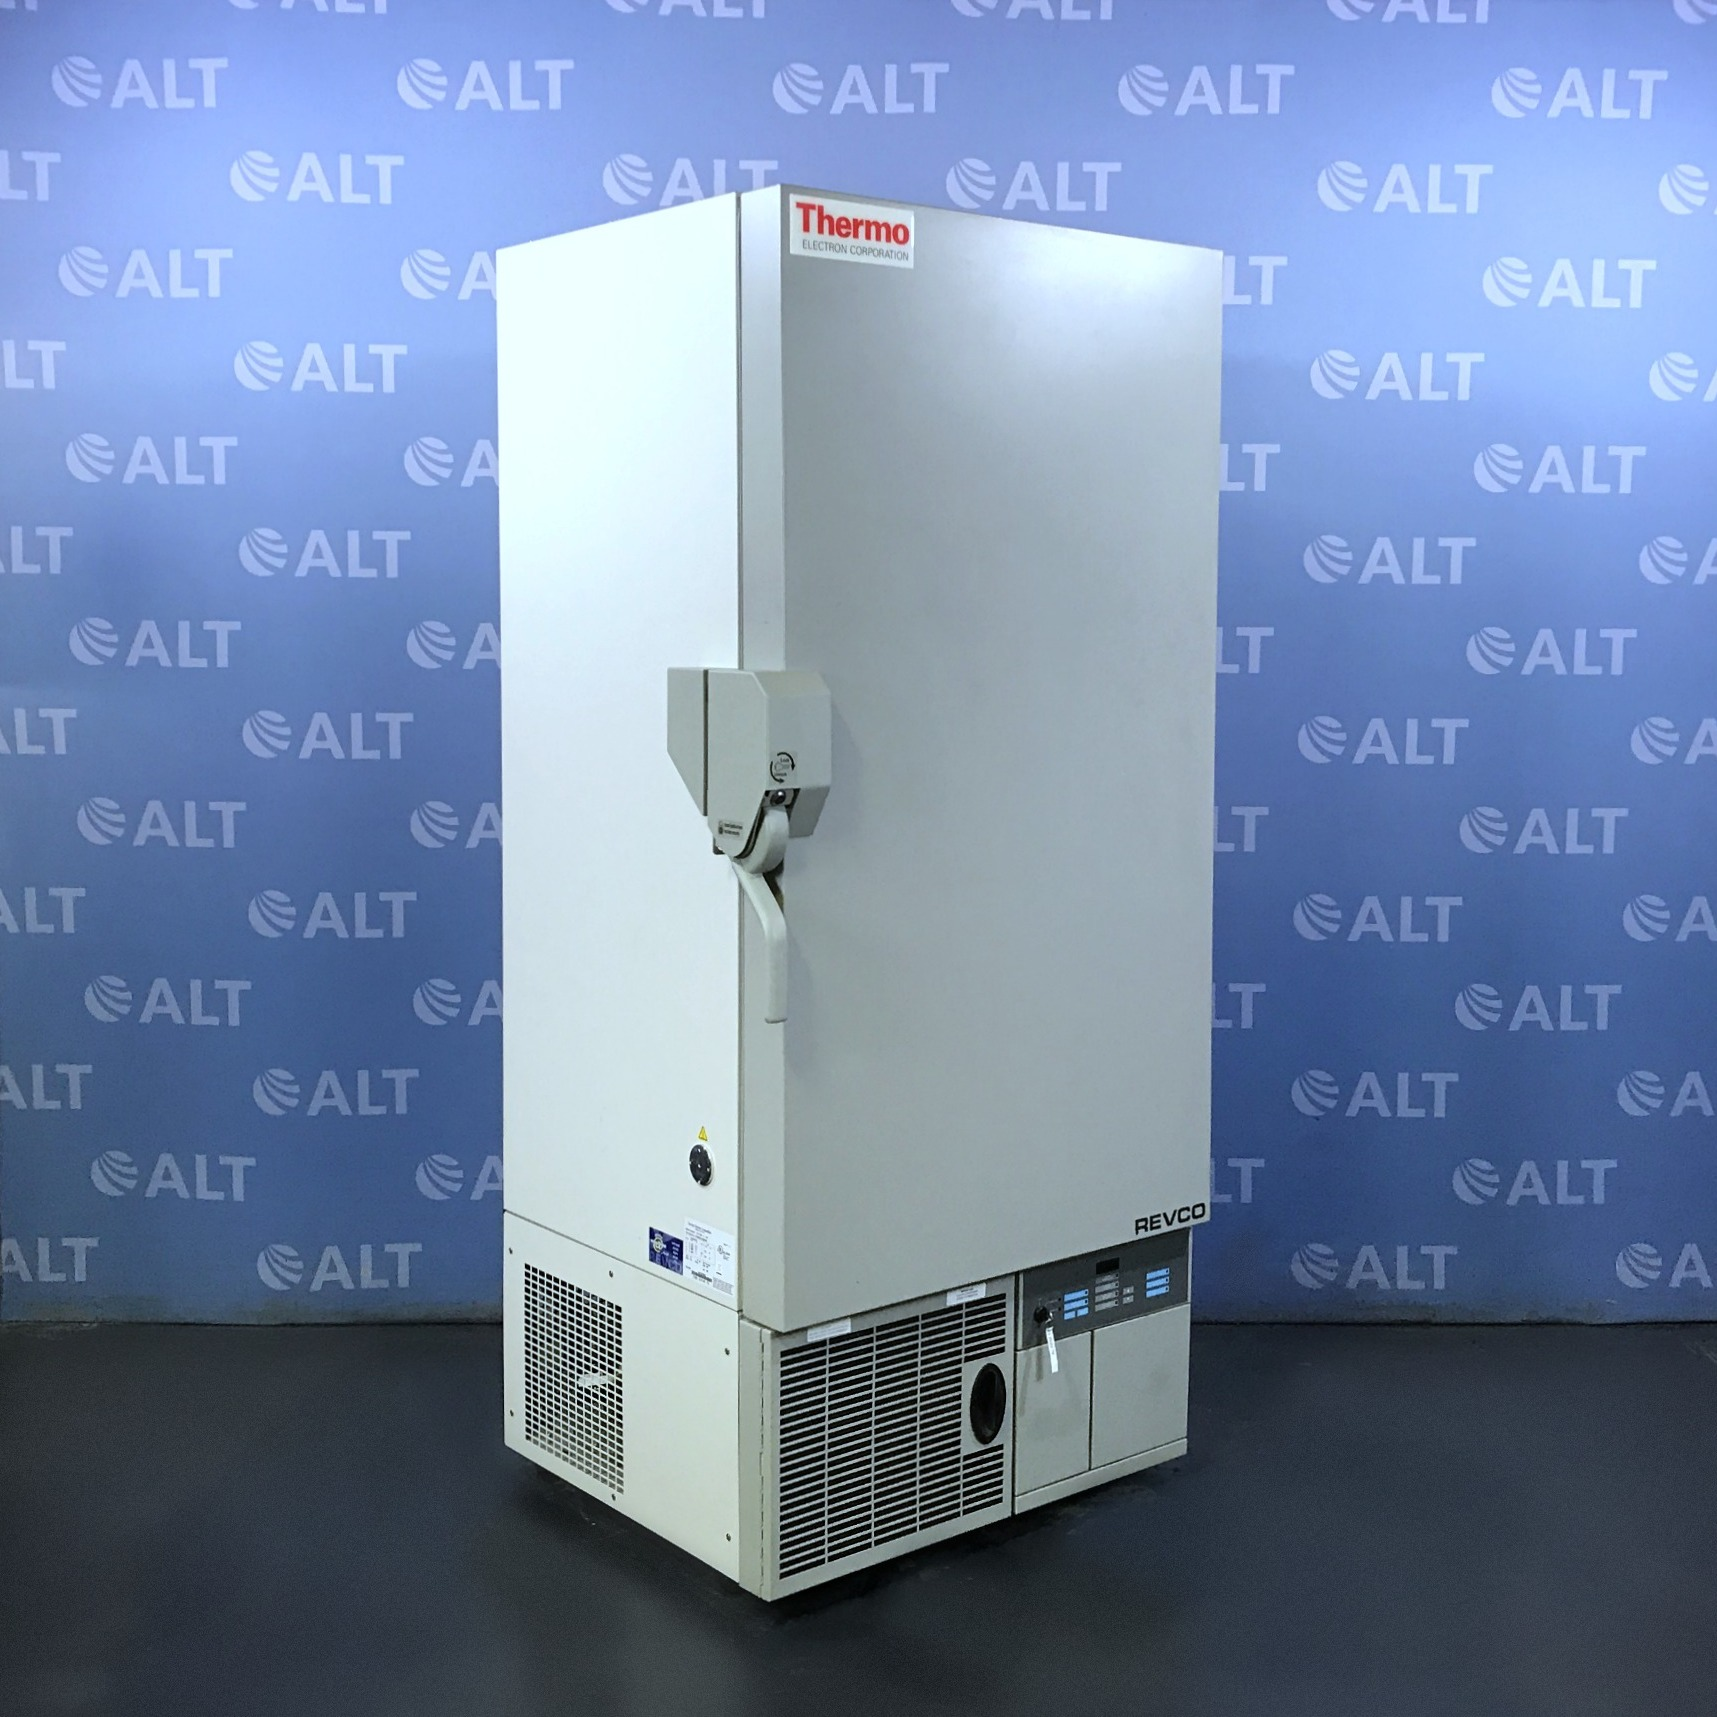 Thermo Electron Corporation Revco ULT-1386-5-40A Elite Upright -86°Freezer Image